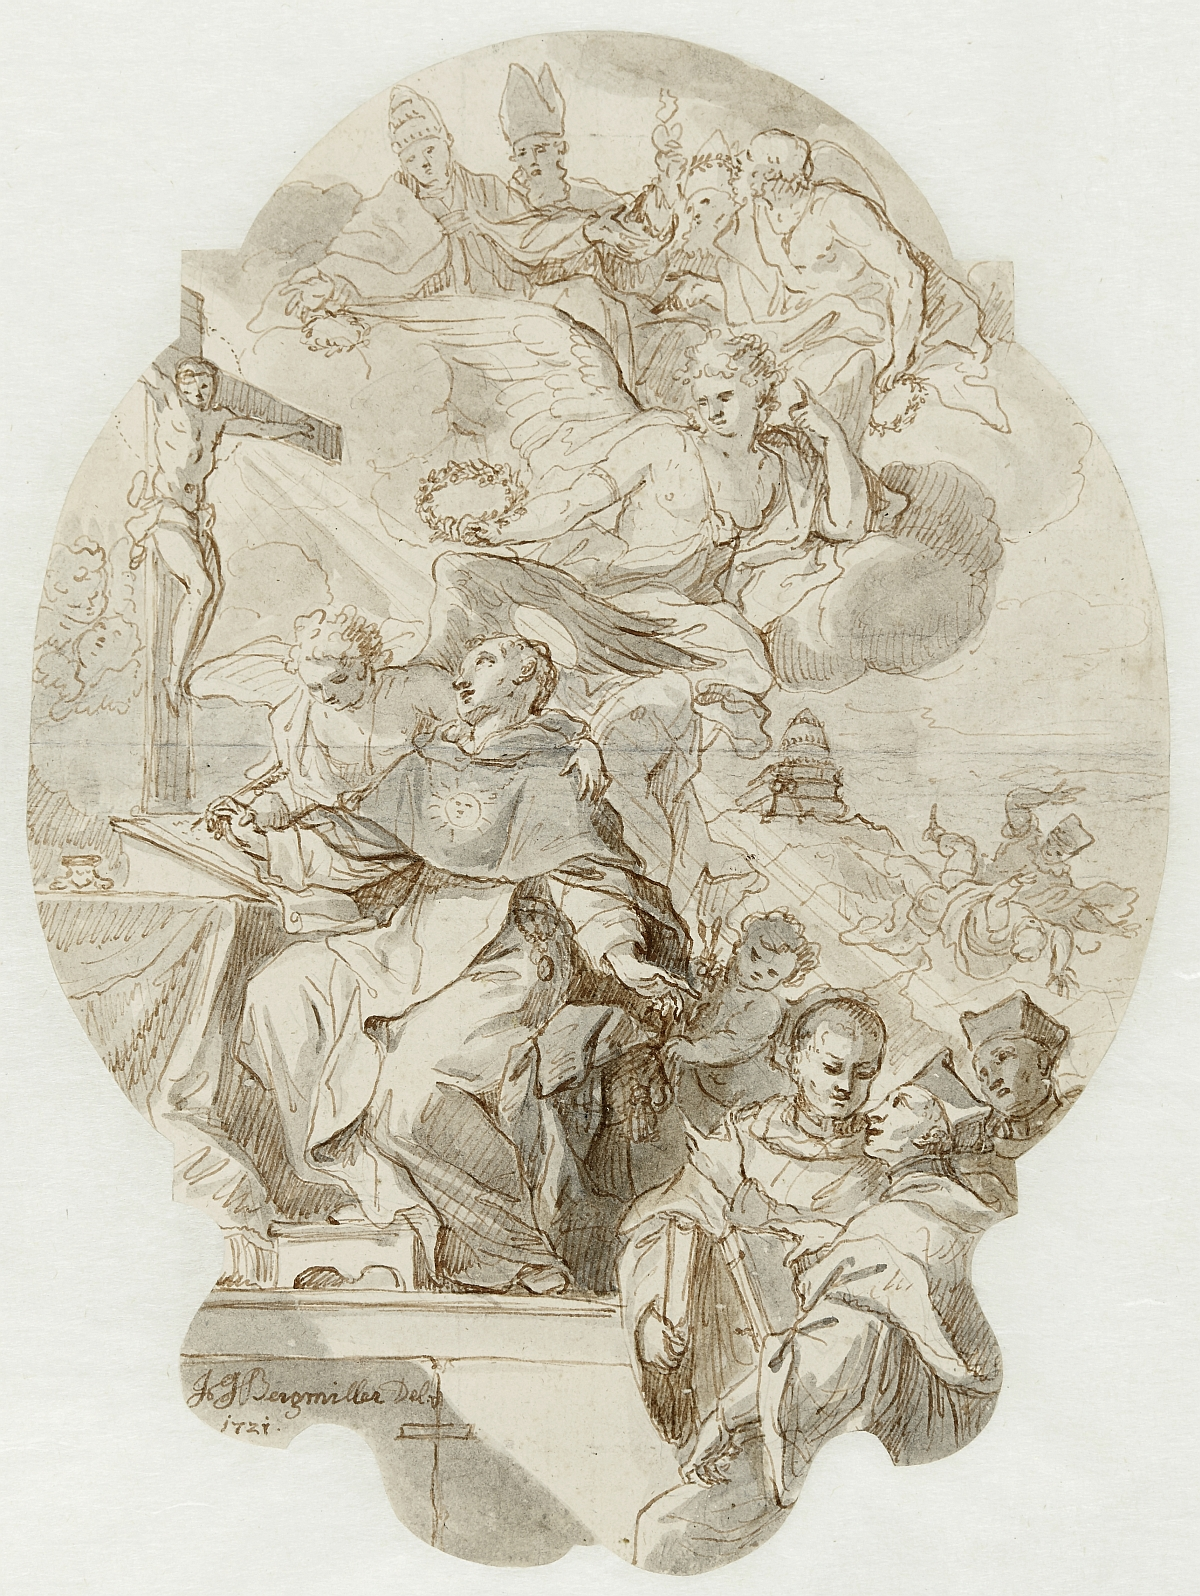 St. Thomas Aquinas, Johann Georg Bergmüller, pen and reddish-brown ink over metal stylus, grey wash, slight graticulation, inv. no. RO 1156; design for an altarpiece in the Collegiate Church, Salzburg